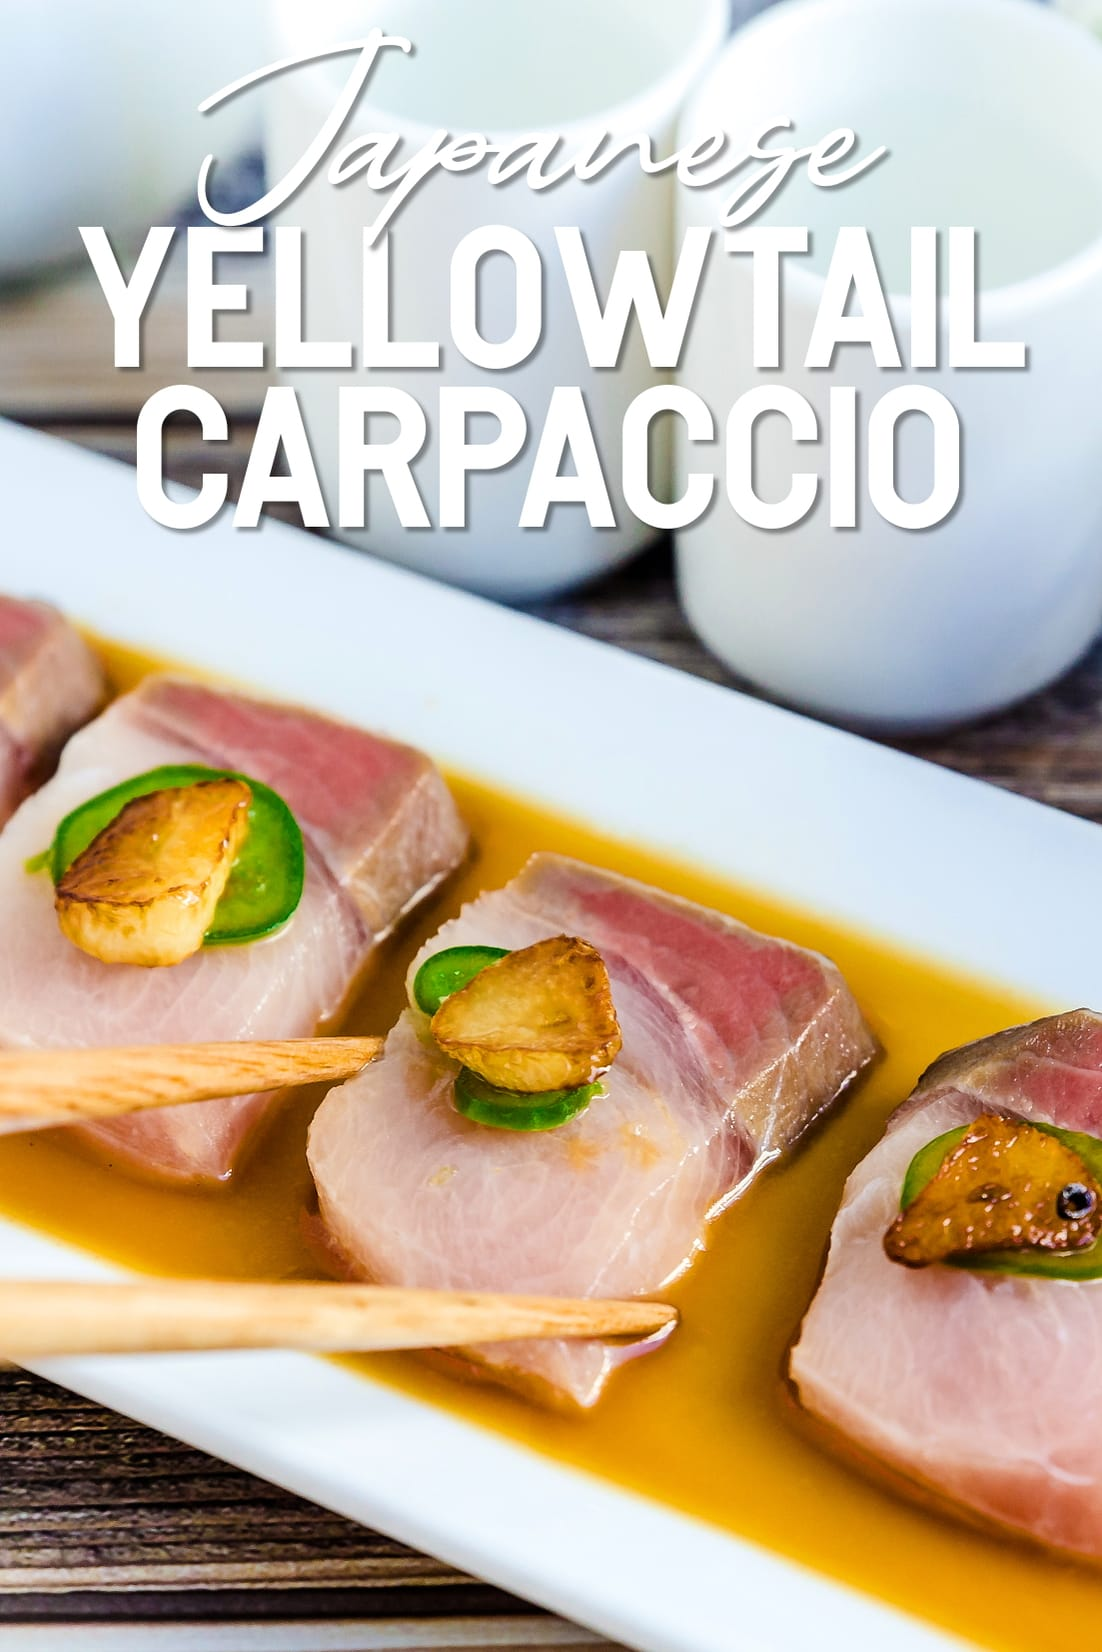 Yellowtail Carpaccio in Yuzu Sauce with chopsticks